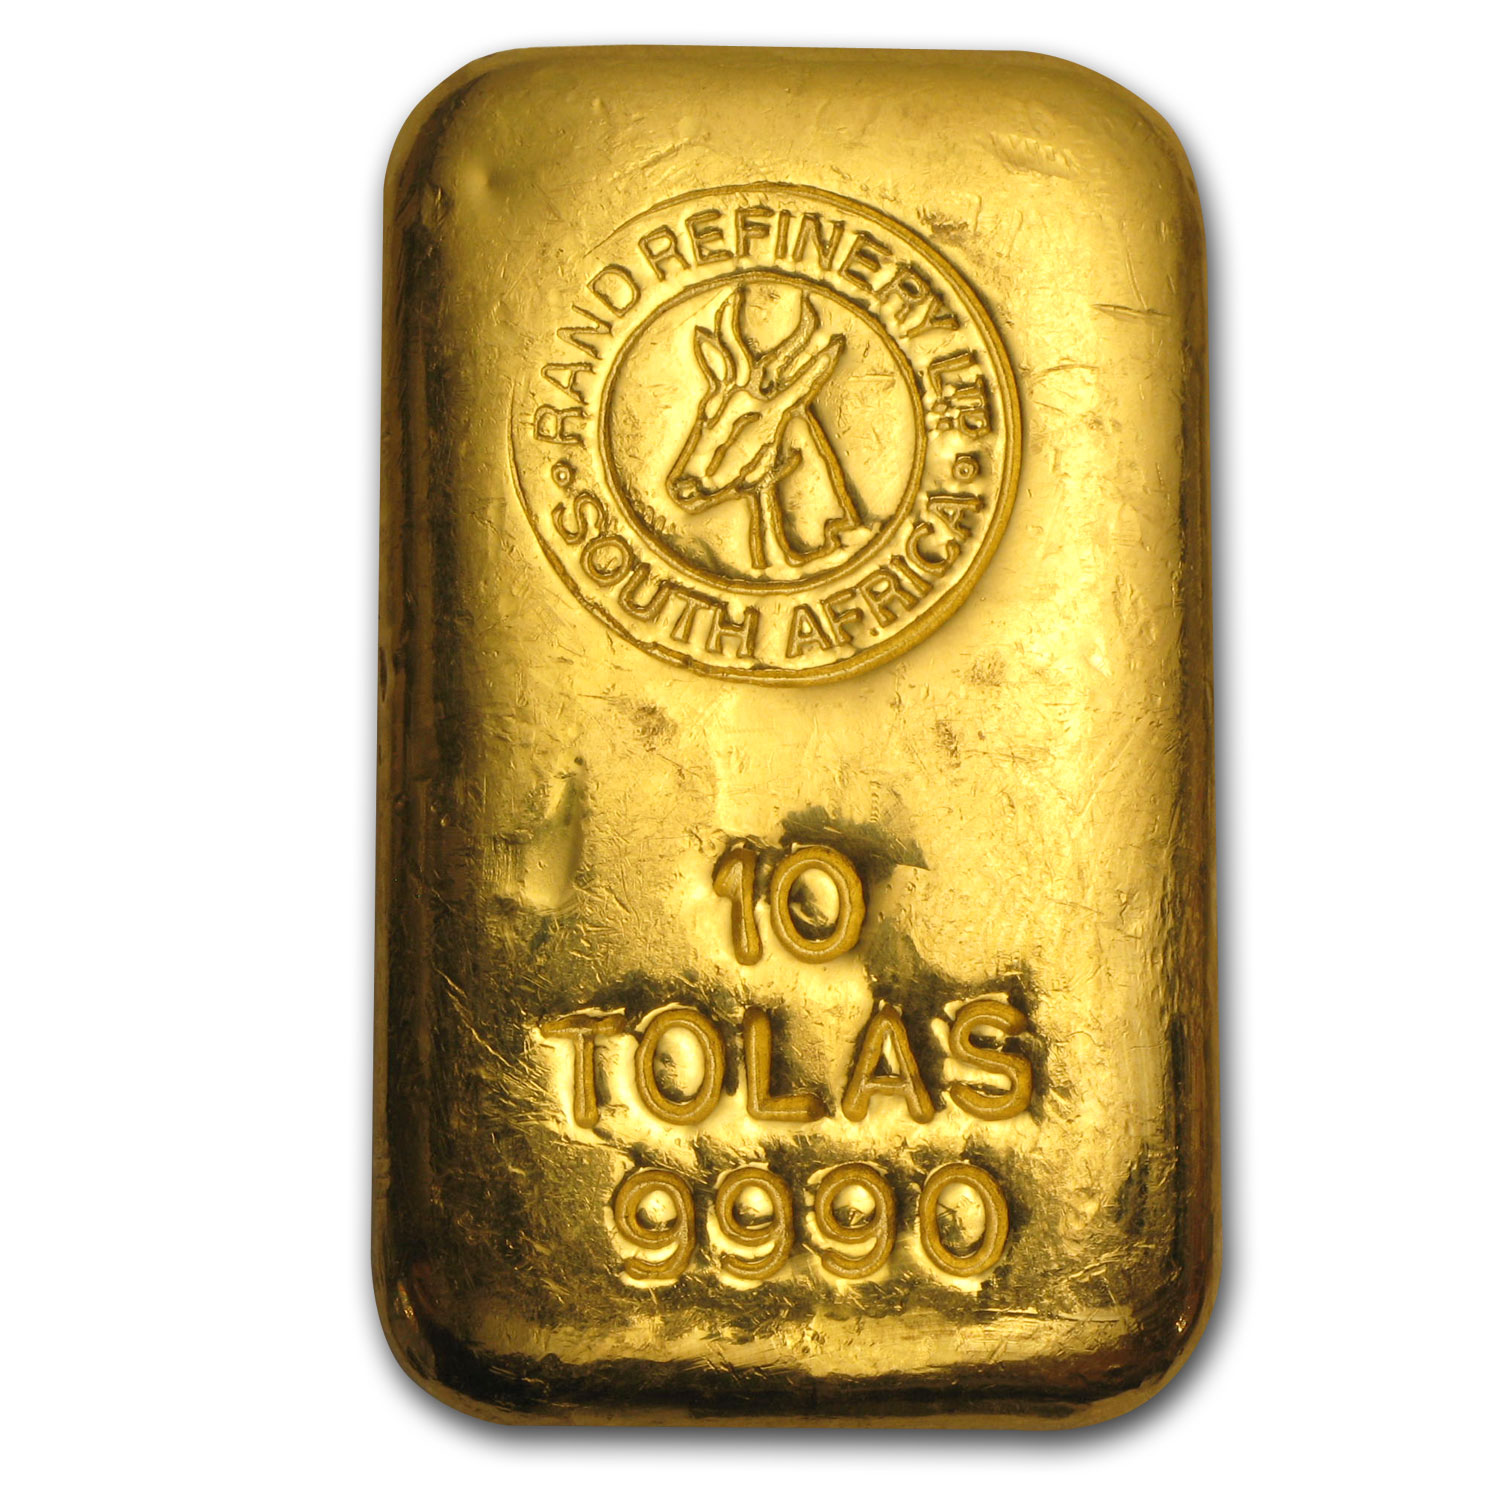 10 Tolas Gold Bar - Rand Refinery (3.75 oz)